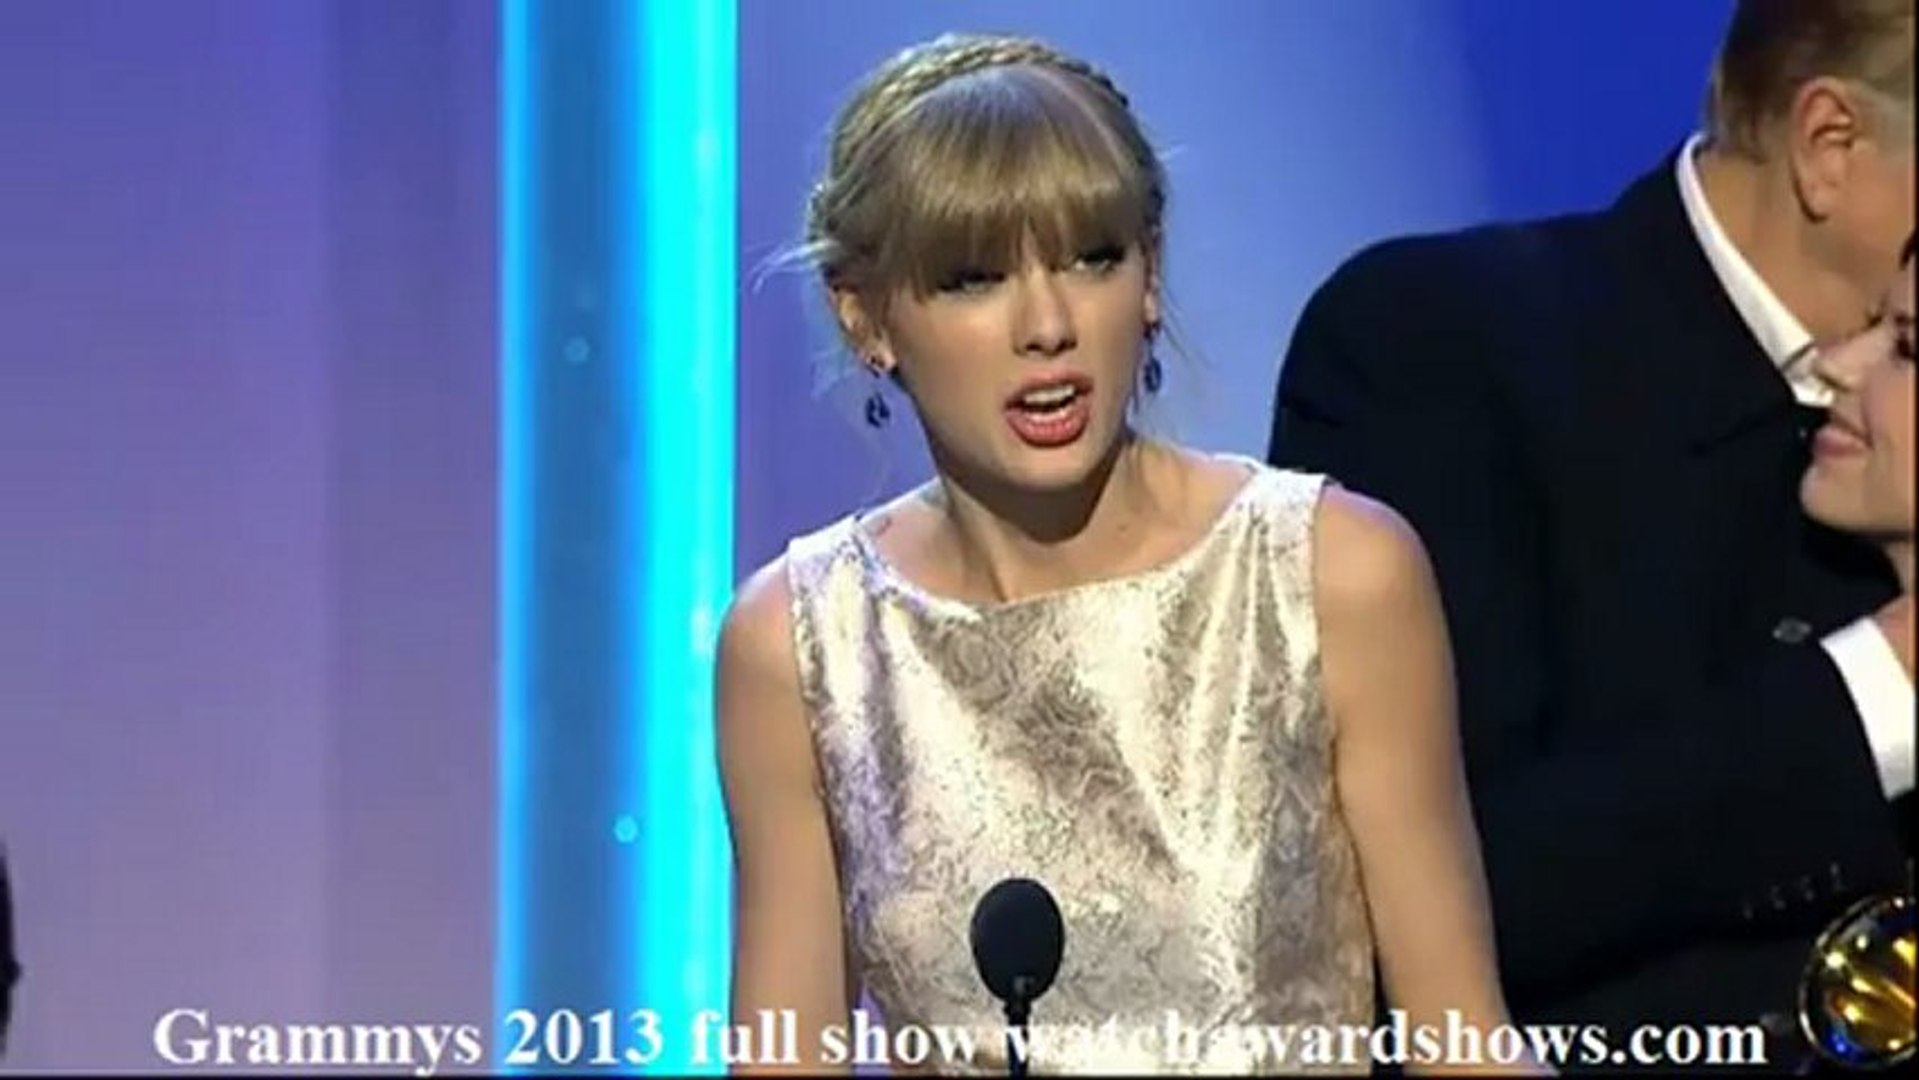 Taylor Swift Civil Wars Acceptance Speech Grammy 2013 Video Dailymotion